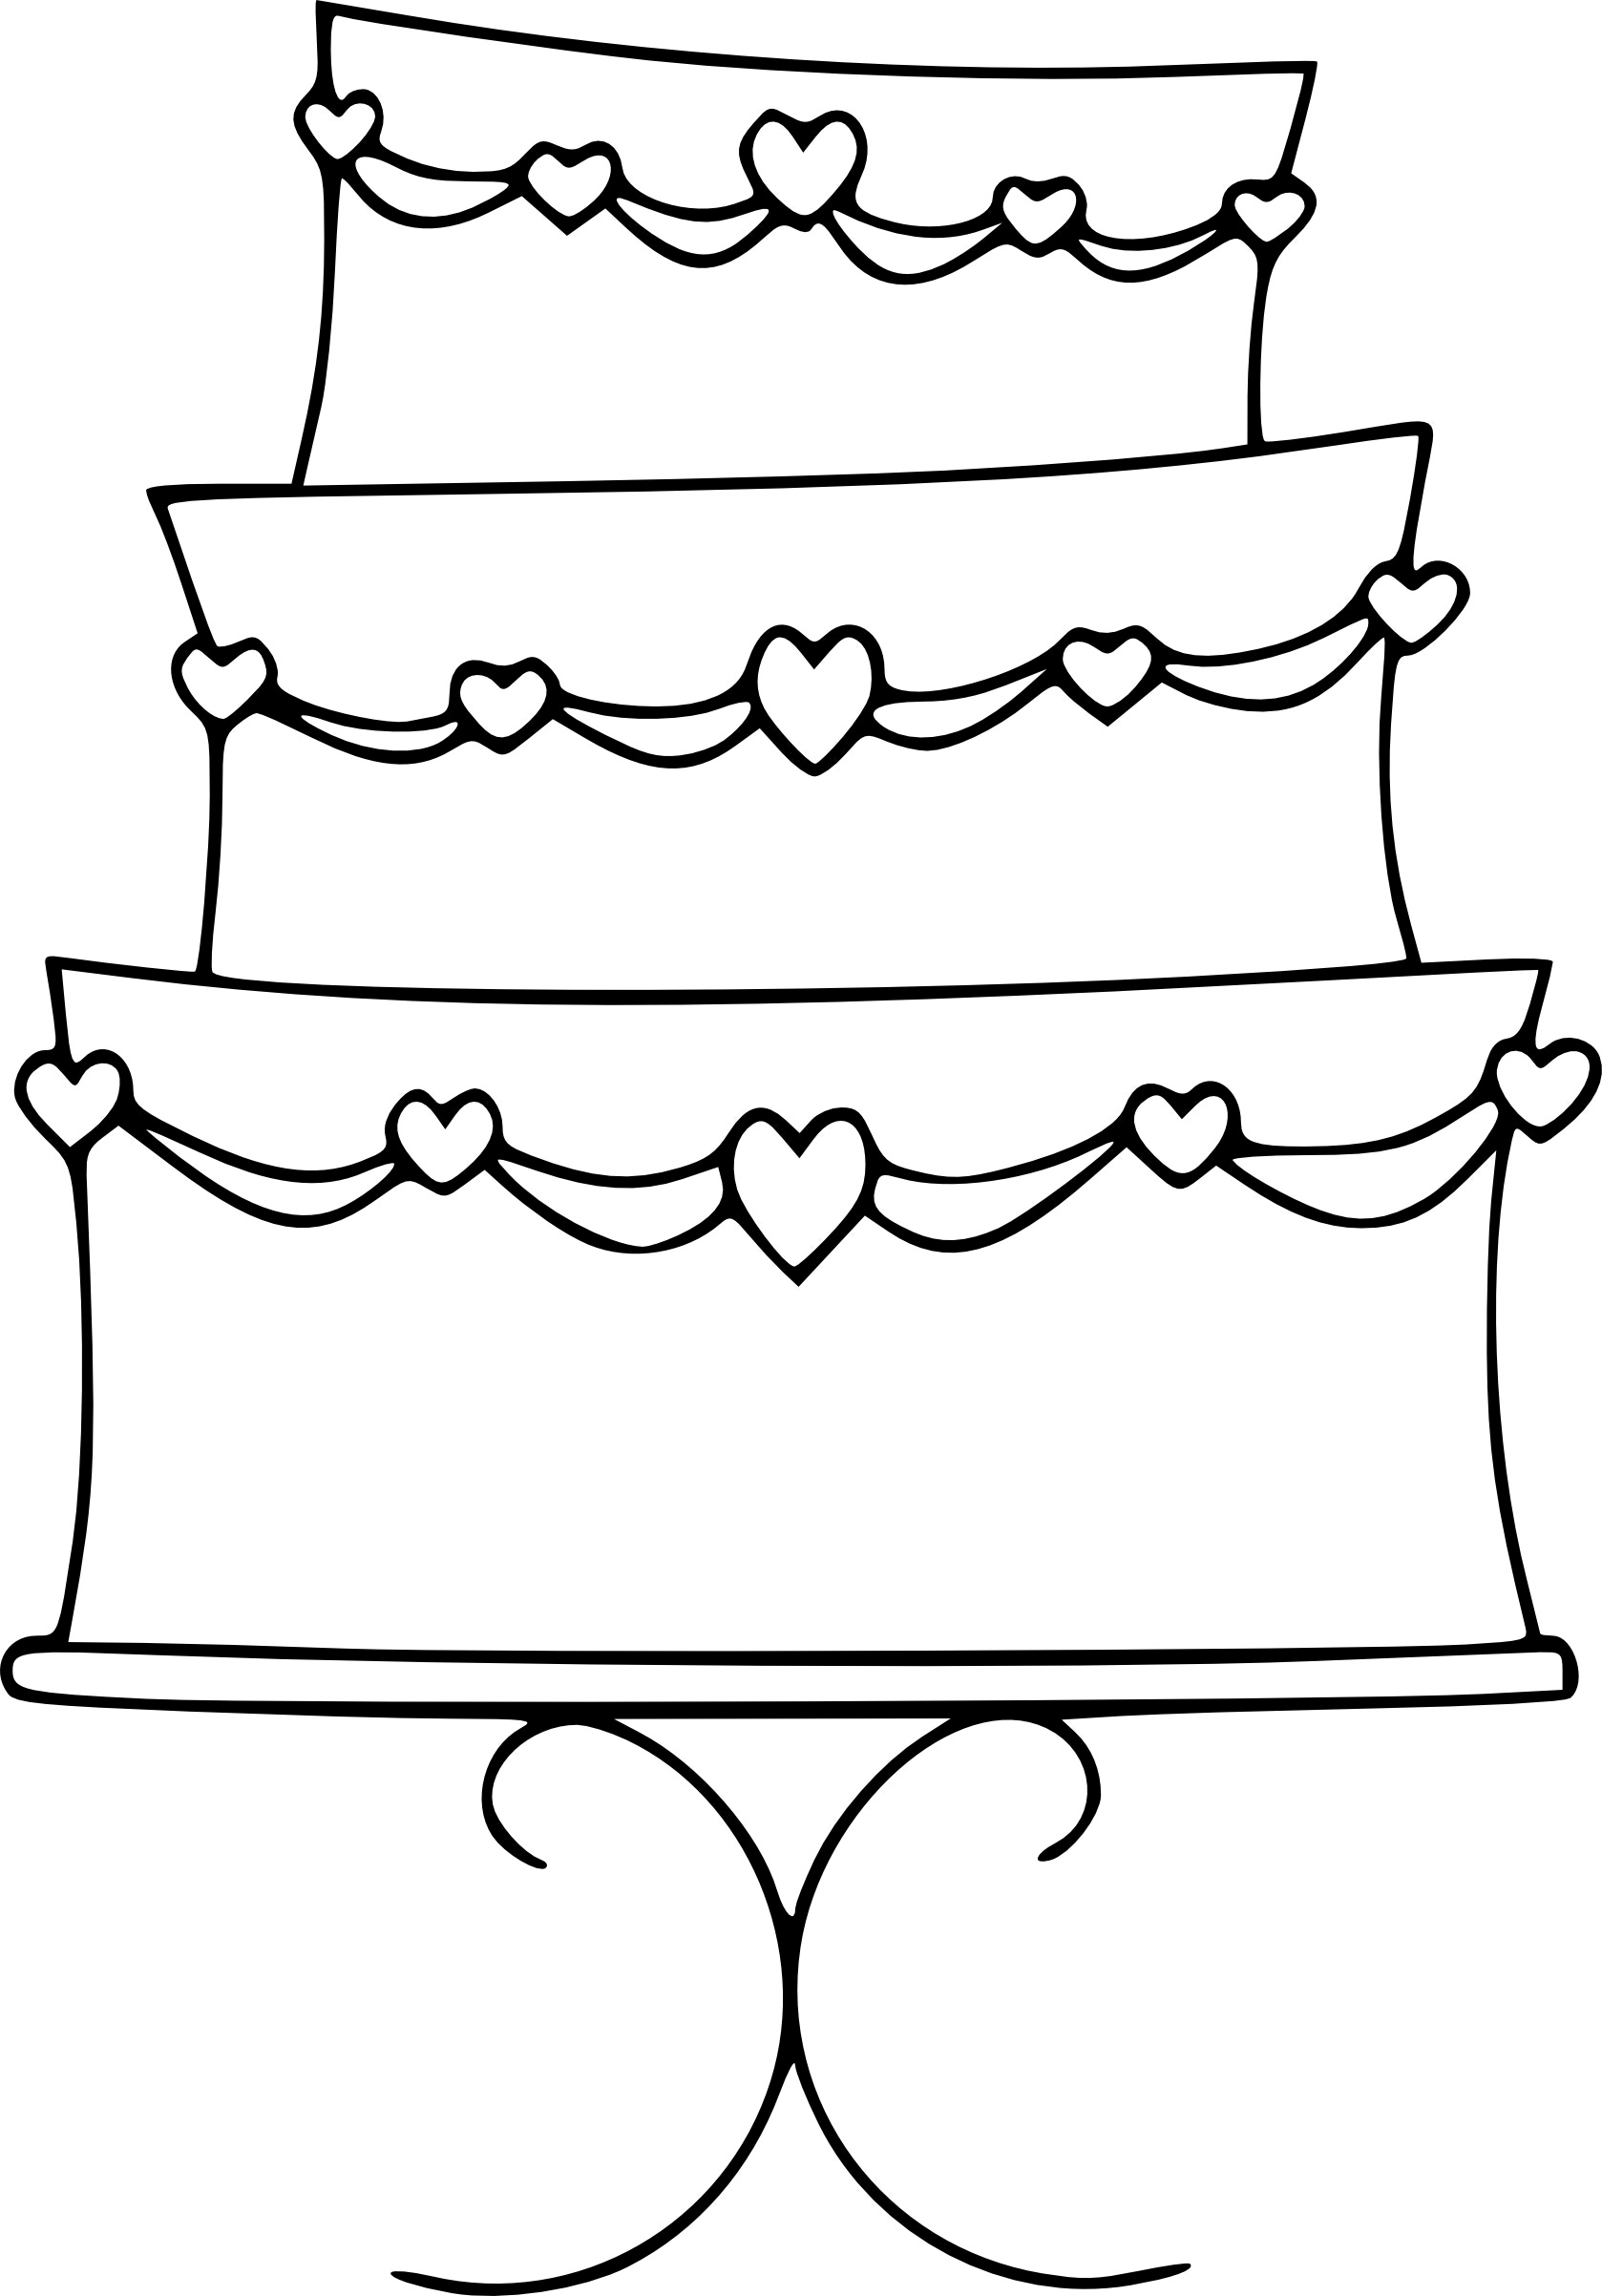 Free Birthday Cake Outline, Download Free Clip Art, Free.